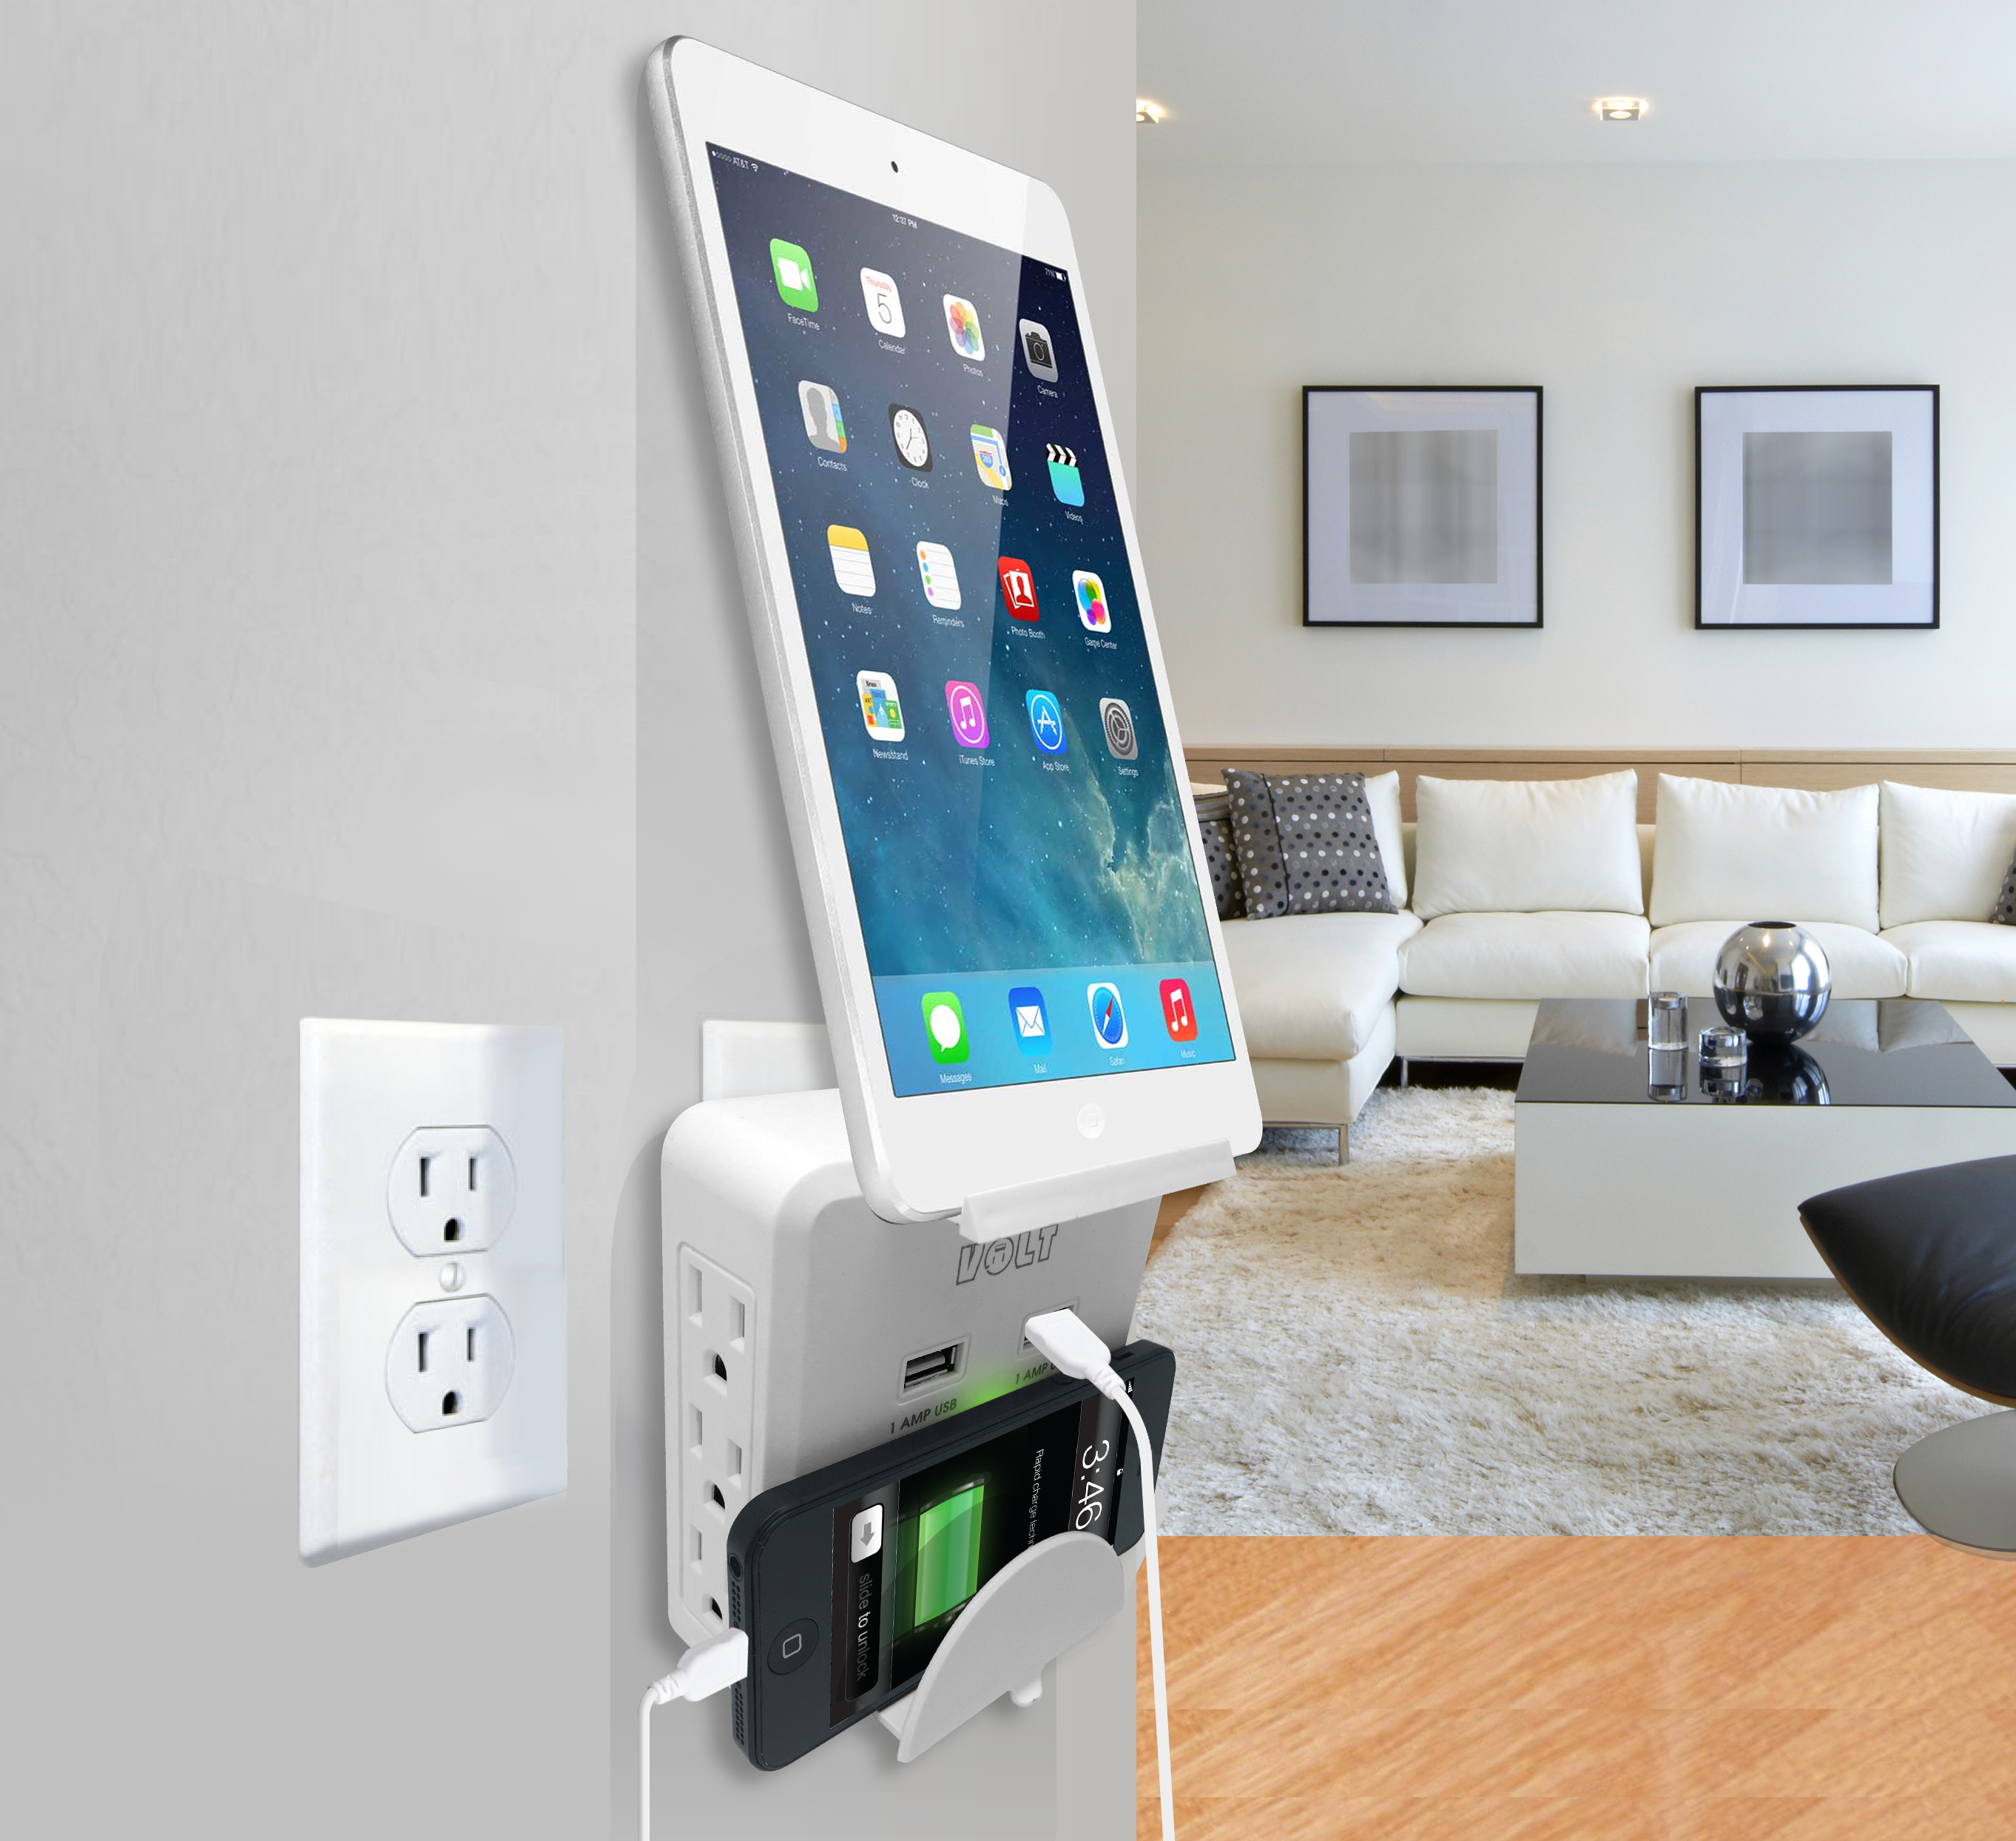 Ordinaire Home/Office Charging Station 2 USB Ports And 6 AC Outlets